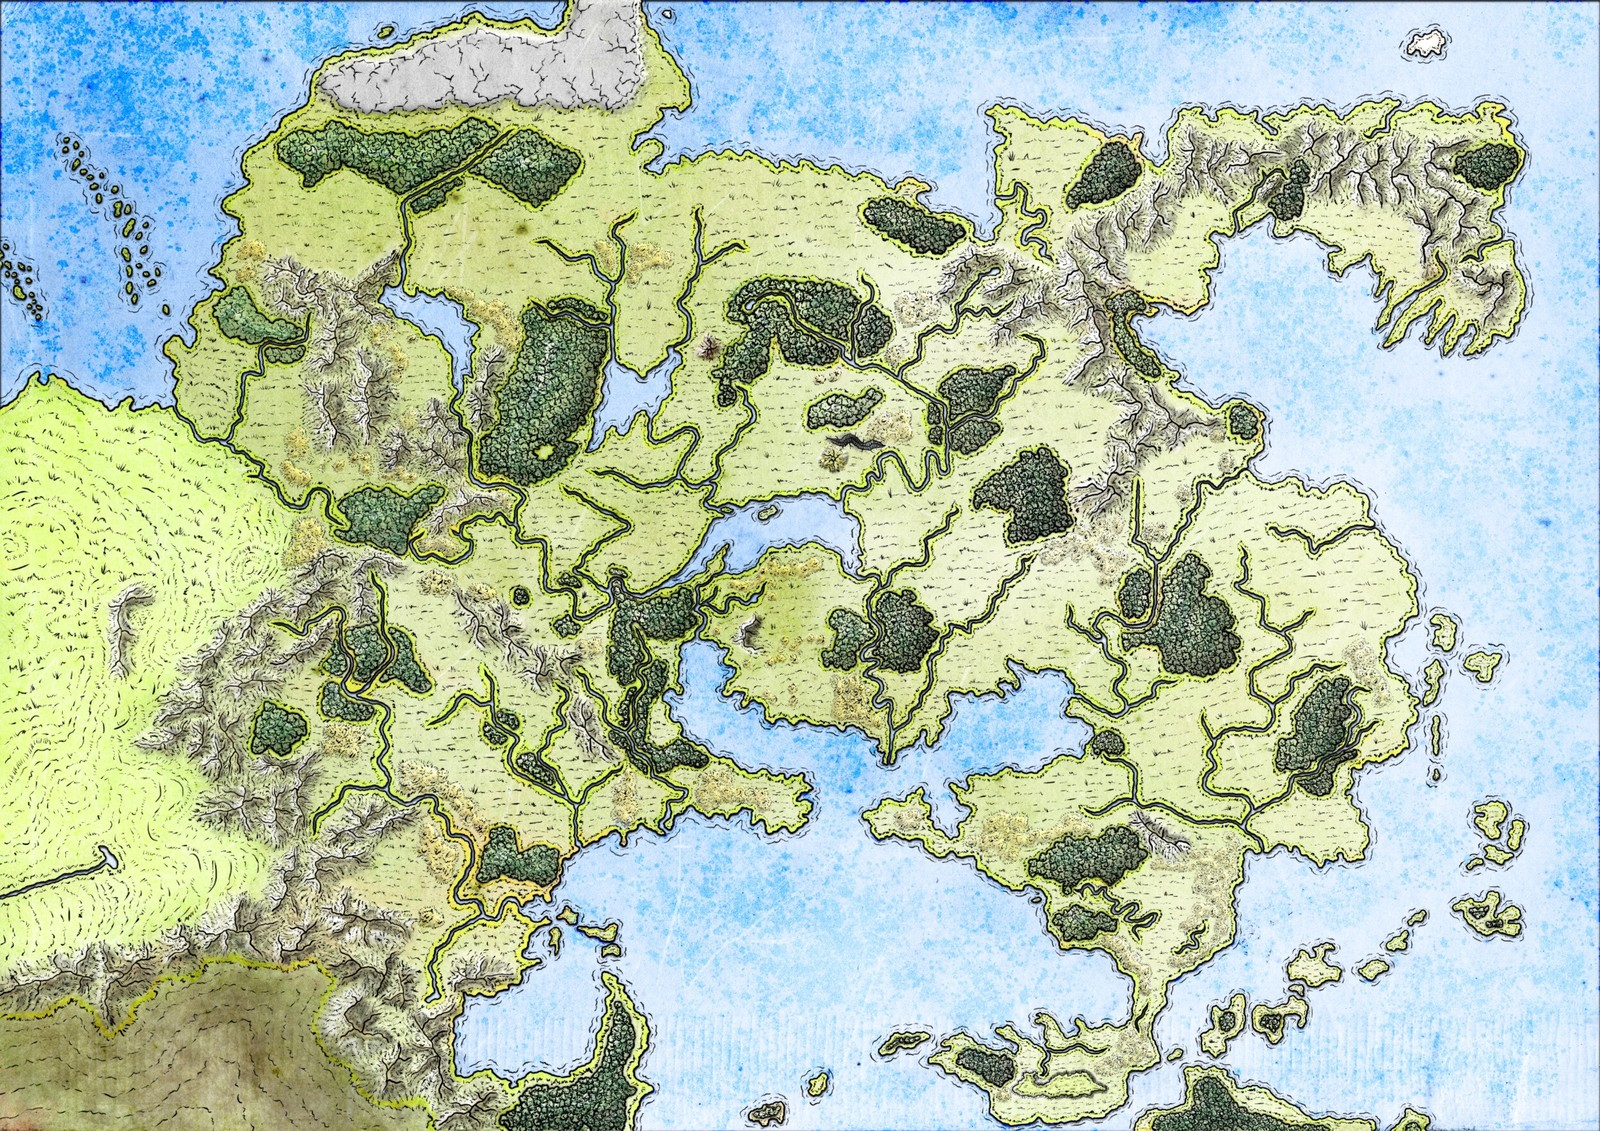 Fan map of Flaeness in Greyhawk Dungeons & Dragons Univers